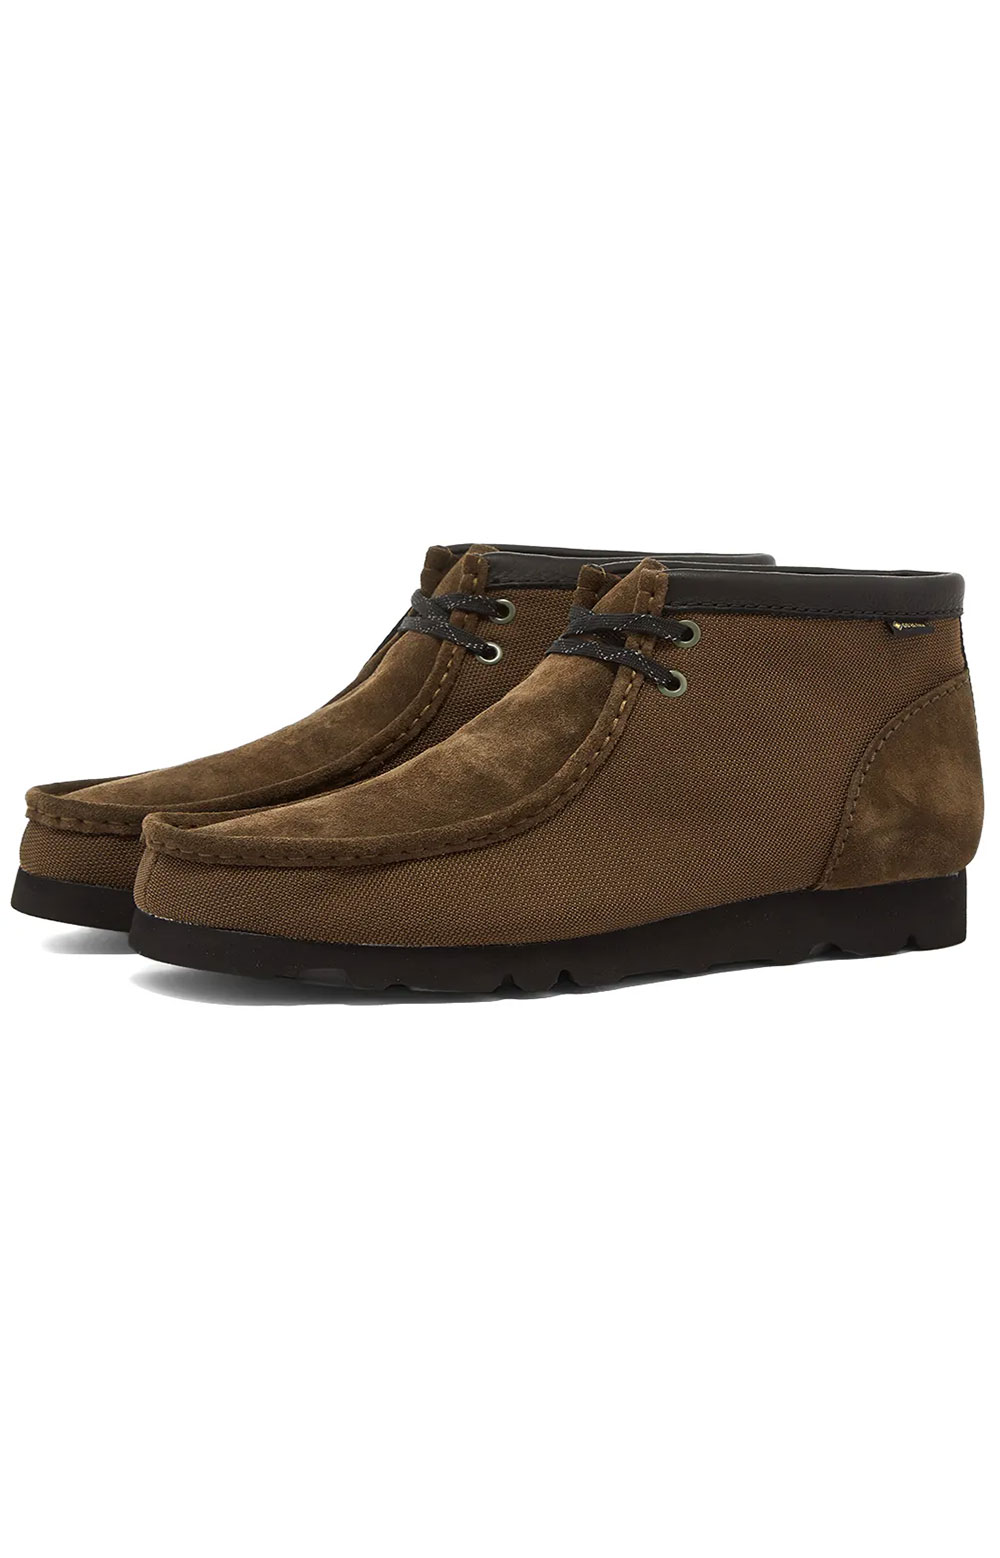 (26154788) Wallabee GTX Boots - Olive Textile 6